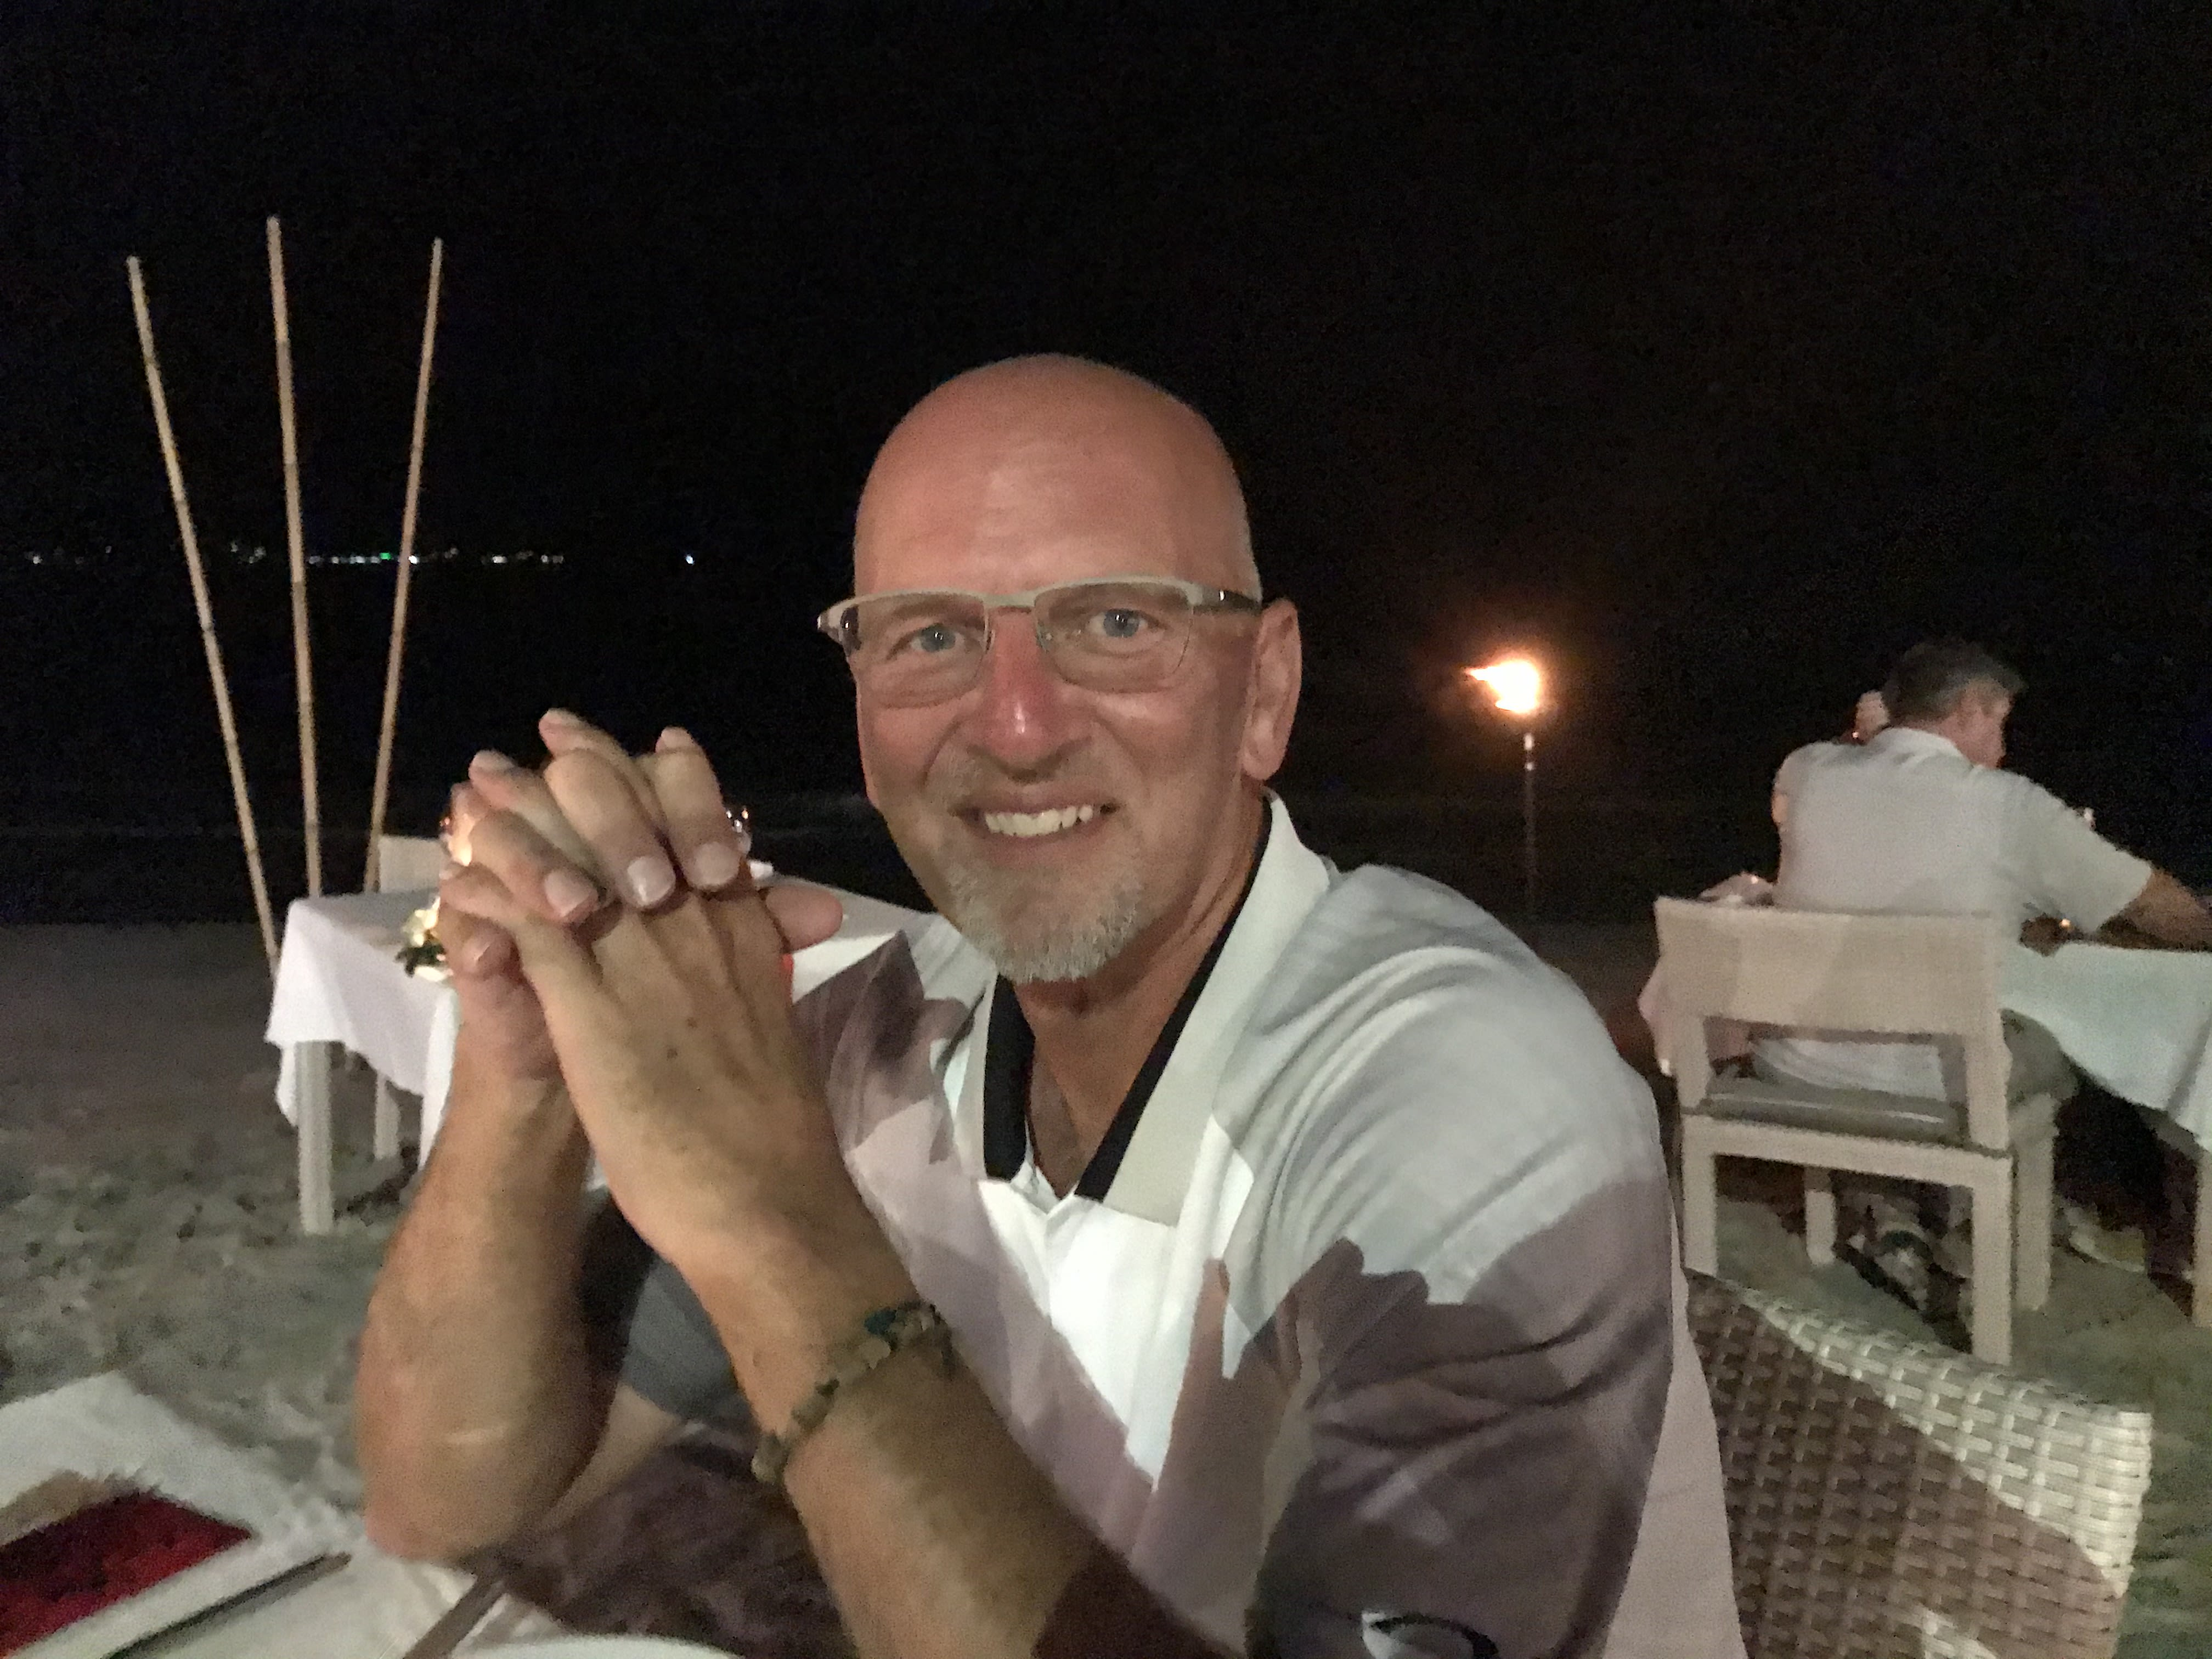 Doug Rohrbaugh at dinner on the beach, Jan. 25, in Koh Samui, Thailand